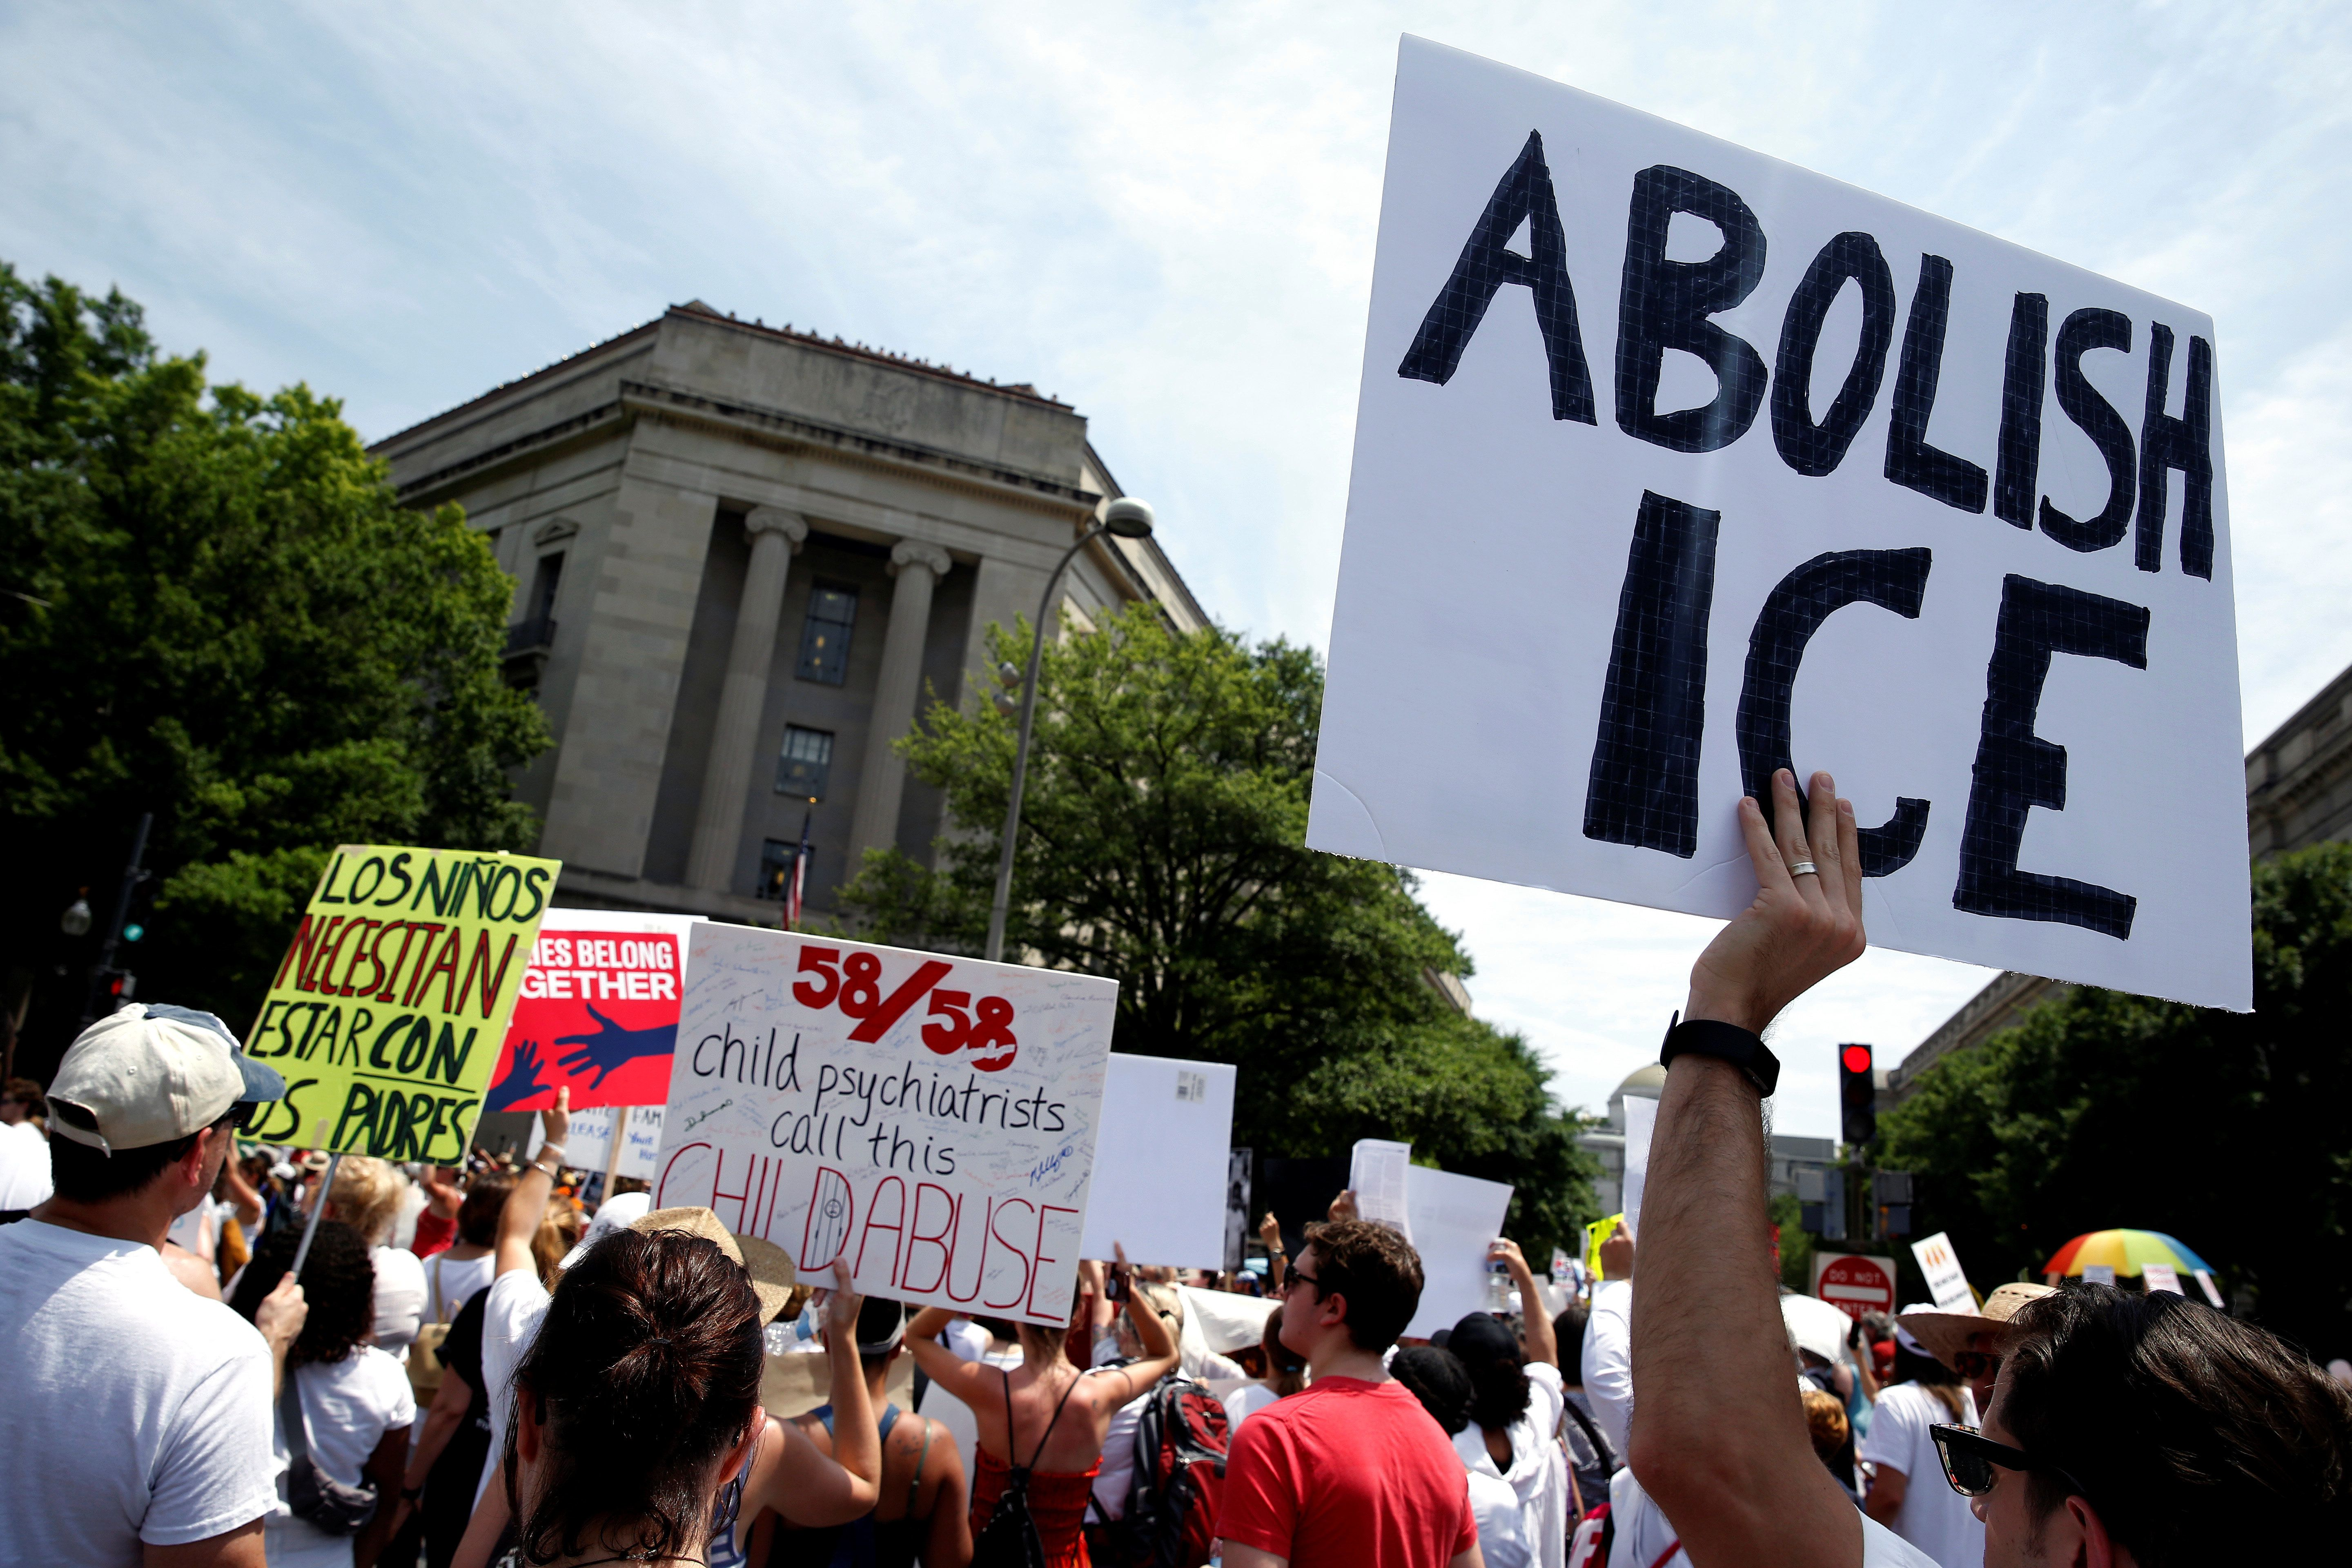 Opinion | 'Abolish ICE' Doesn't Mean What Conservatives Say It